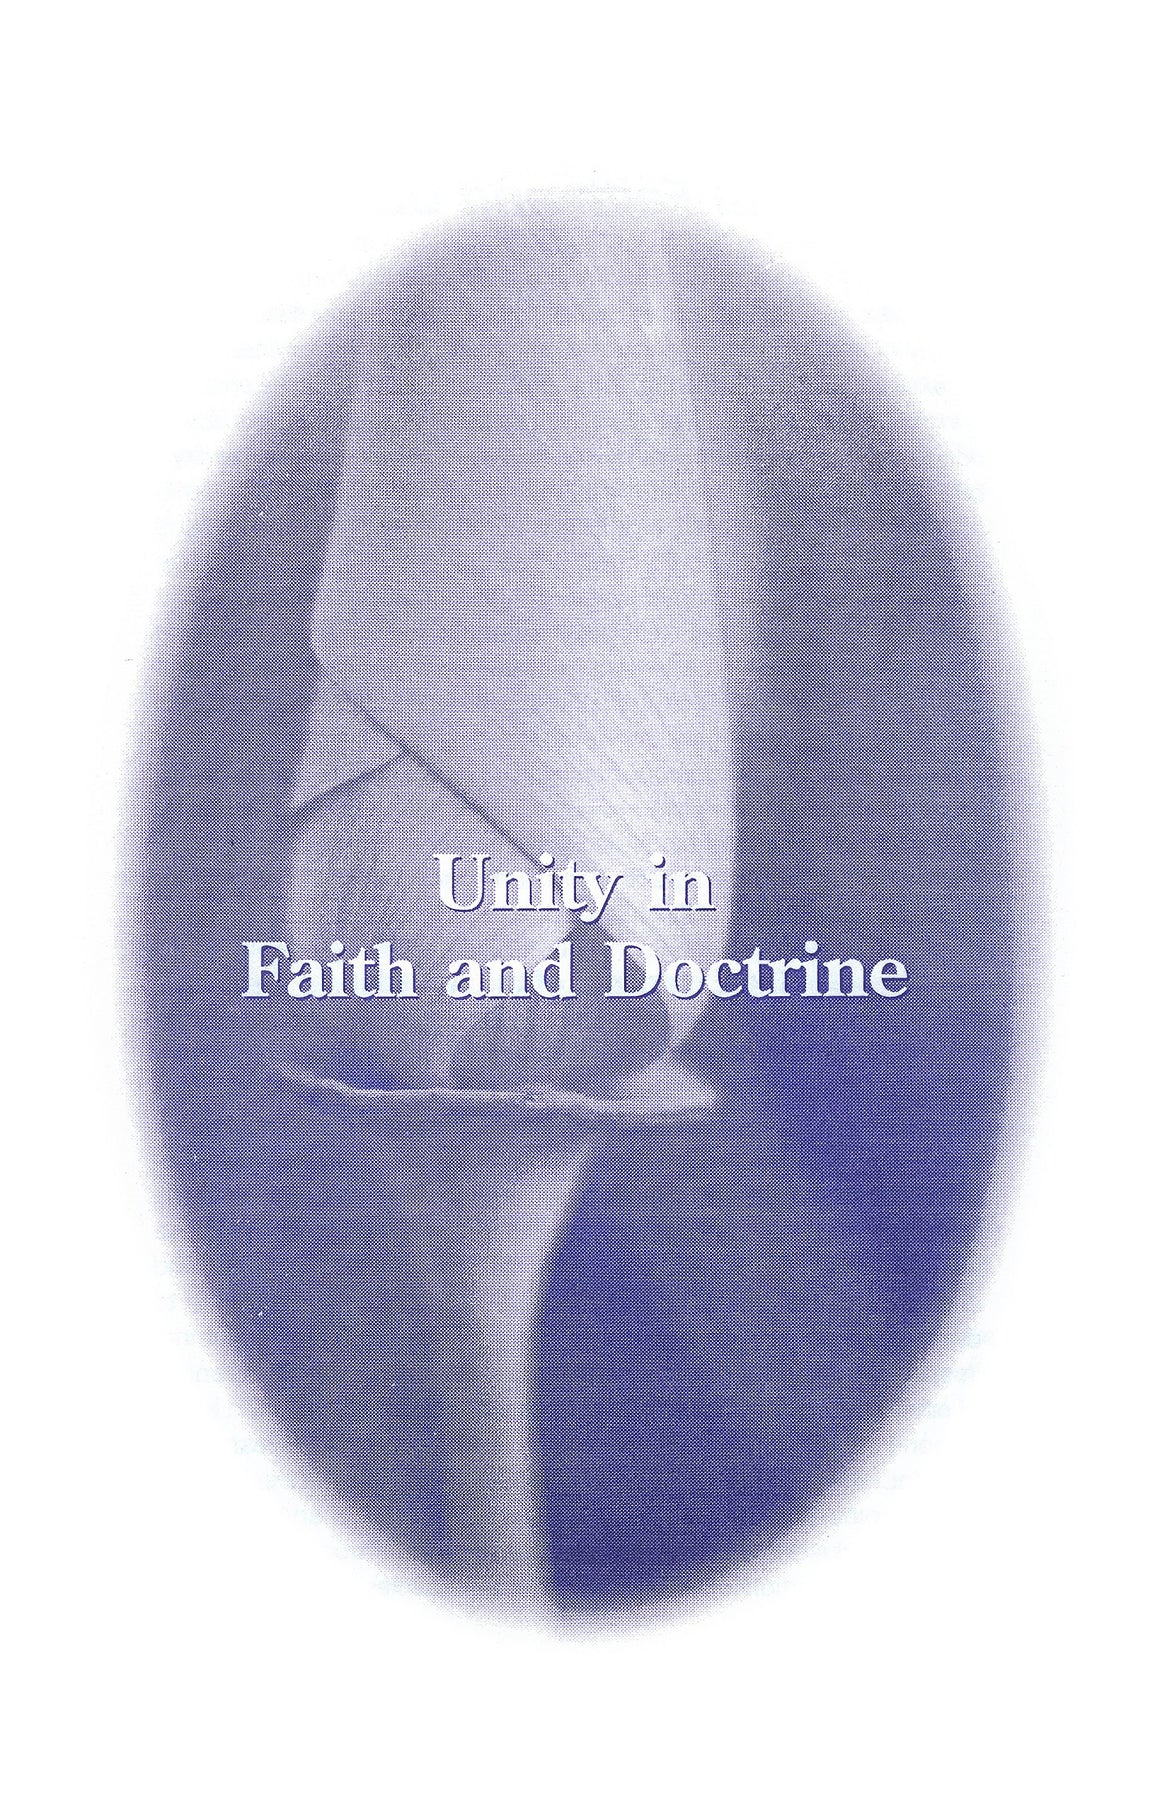 Unity in Faith and Doctrine